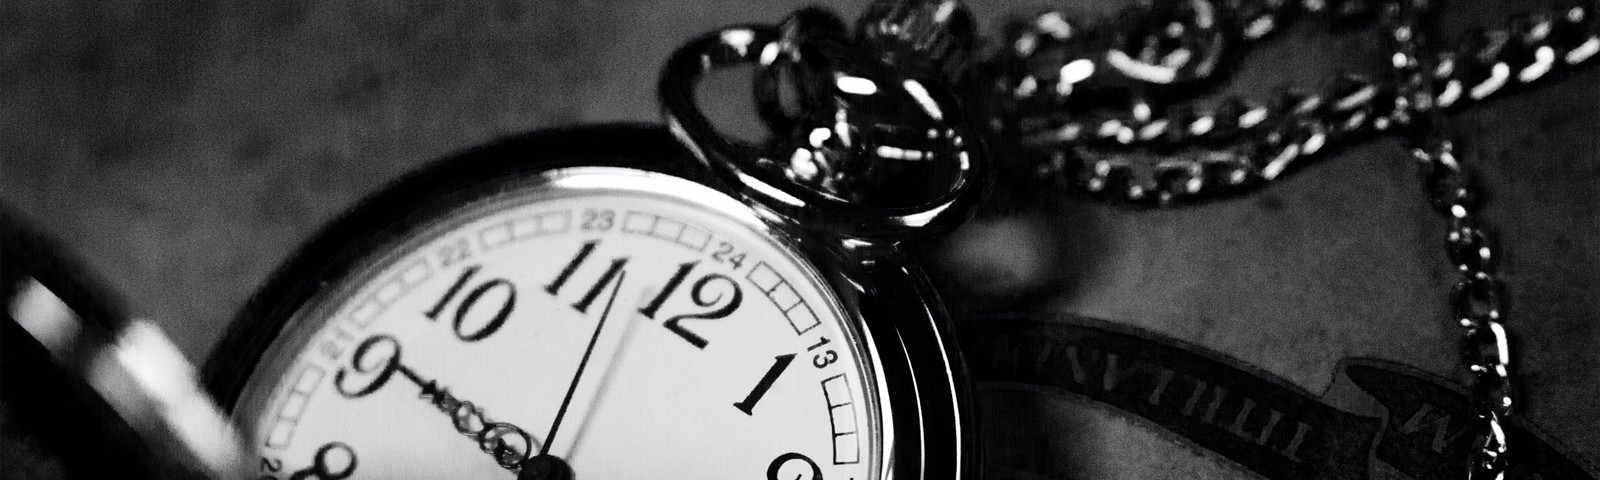 Close-up of the face of an antique pocket watch.